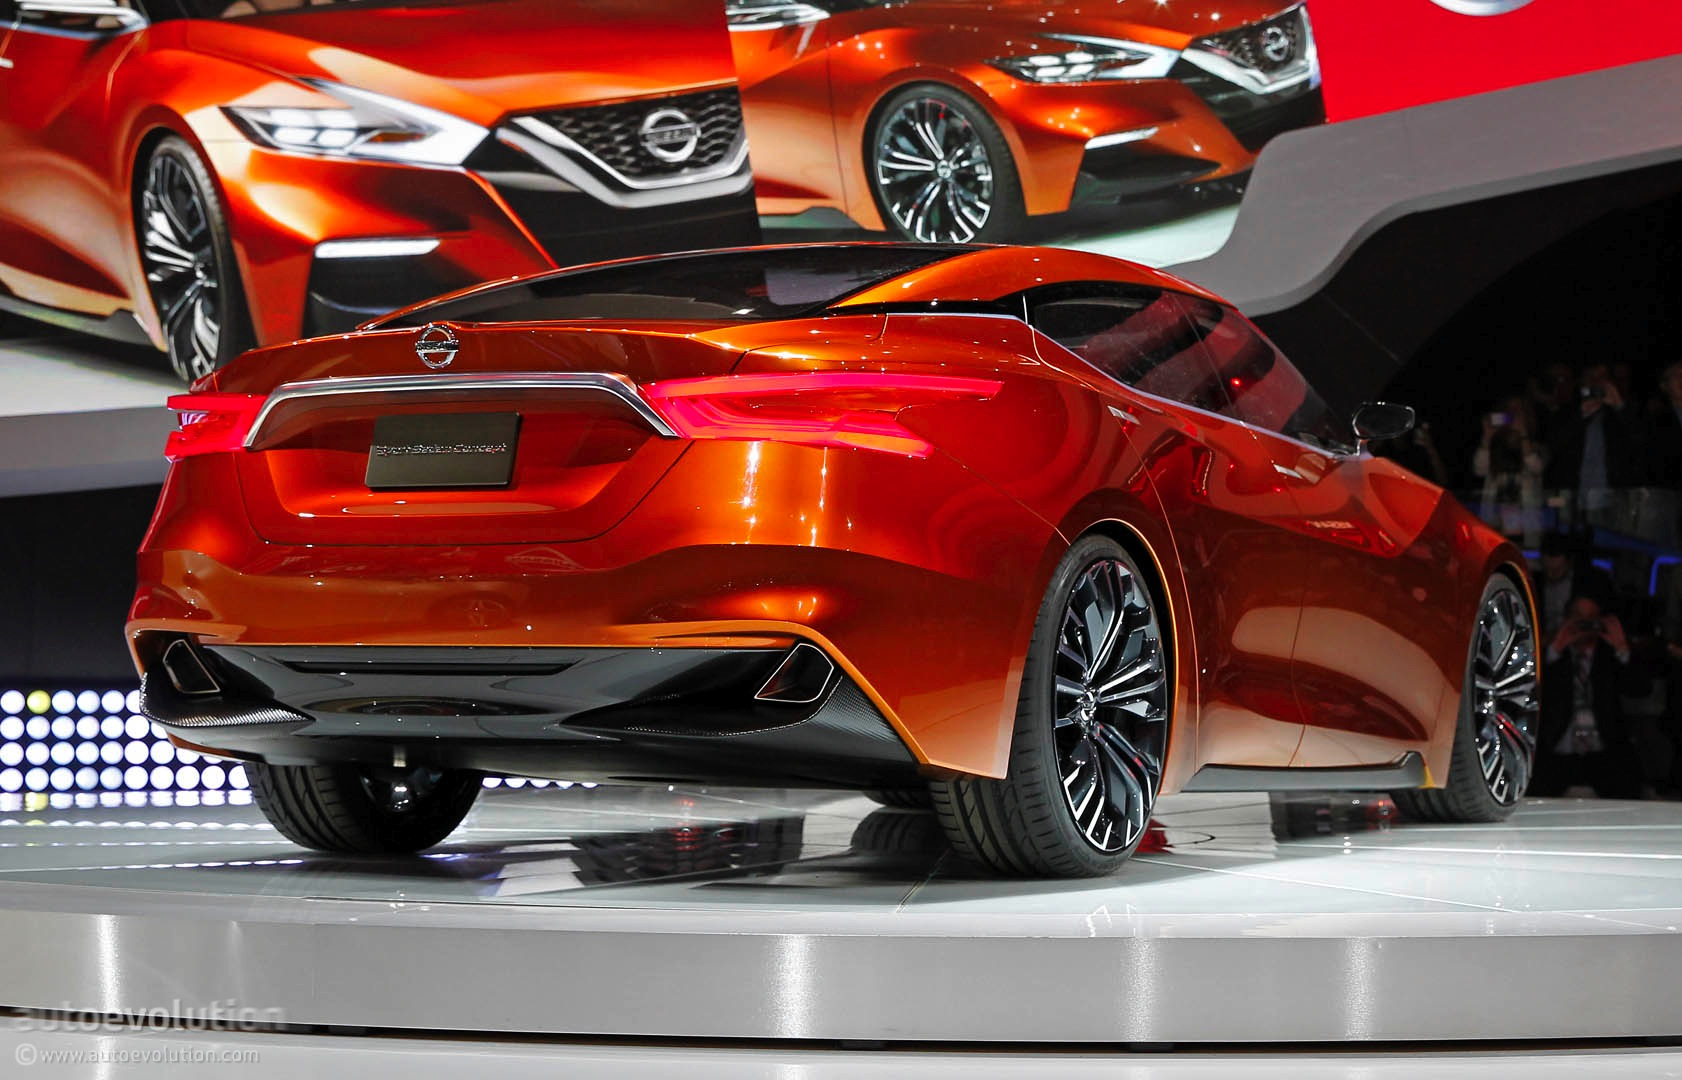 New Nissan Maxima >> Nissan Sport Sedan Concept Previews the 2016 Maxima [Live Photos] - autoevolution